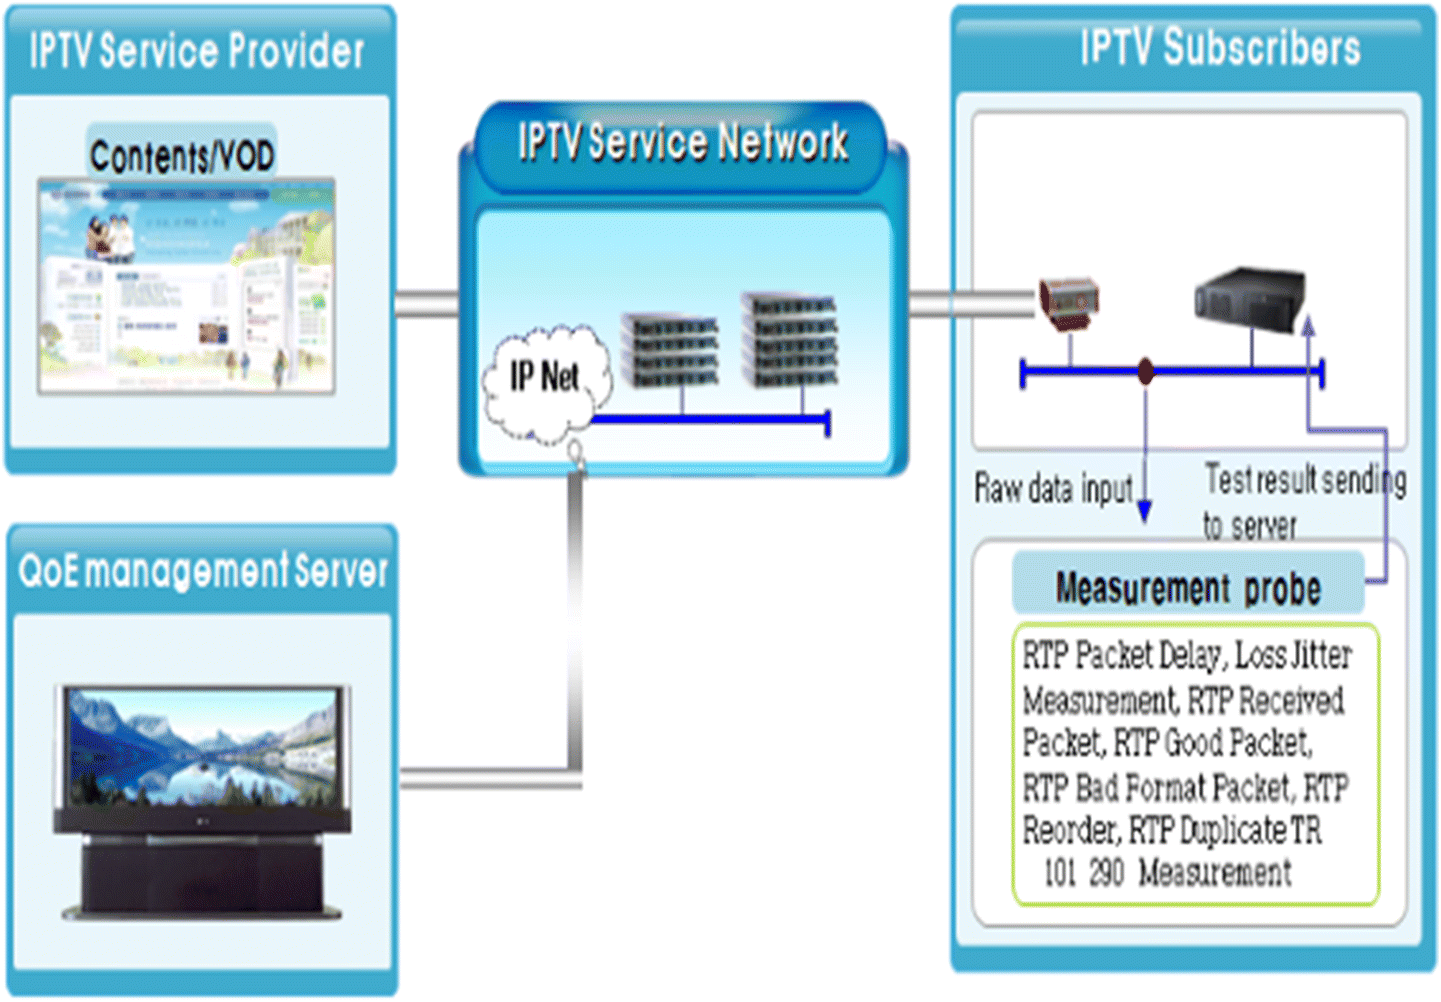 A study on the control of smart device set-top box using image based